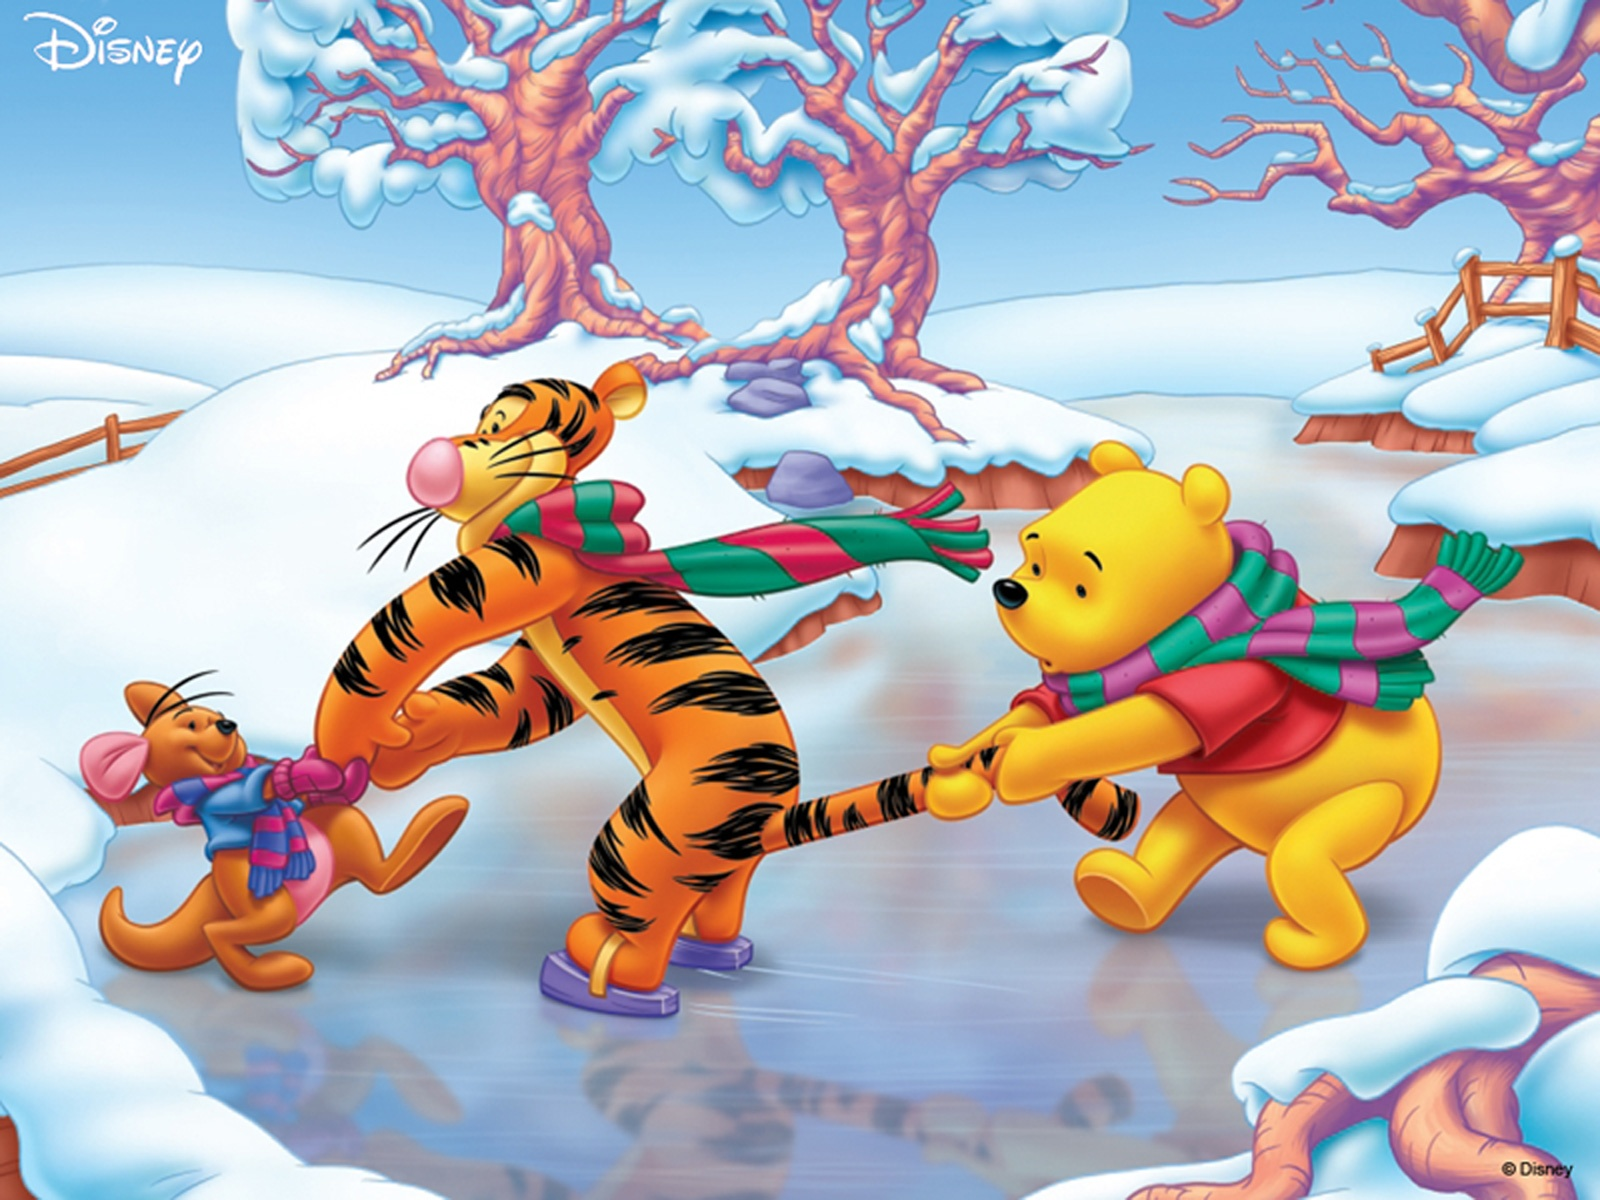 Disney winnie the pooh wallpaper sf wallpaper walt disney cartoon winnie the pooh wallpaper voltagebd Image collections